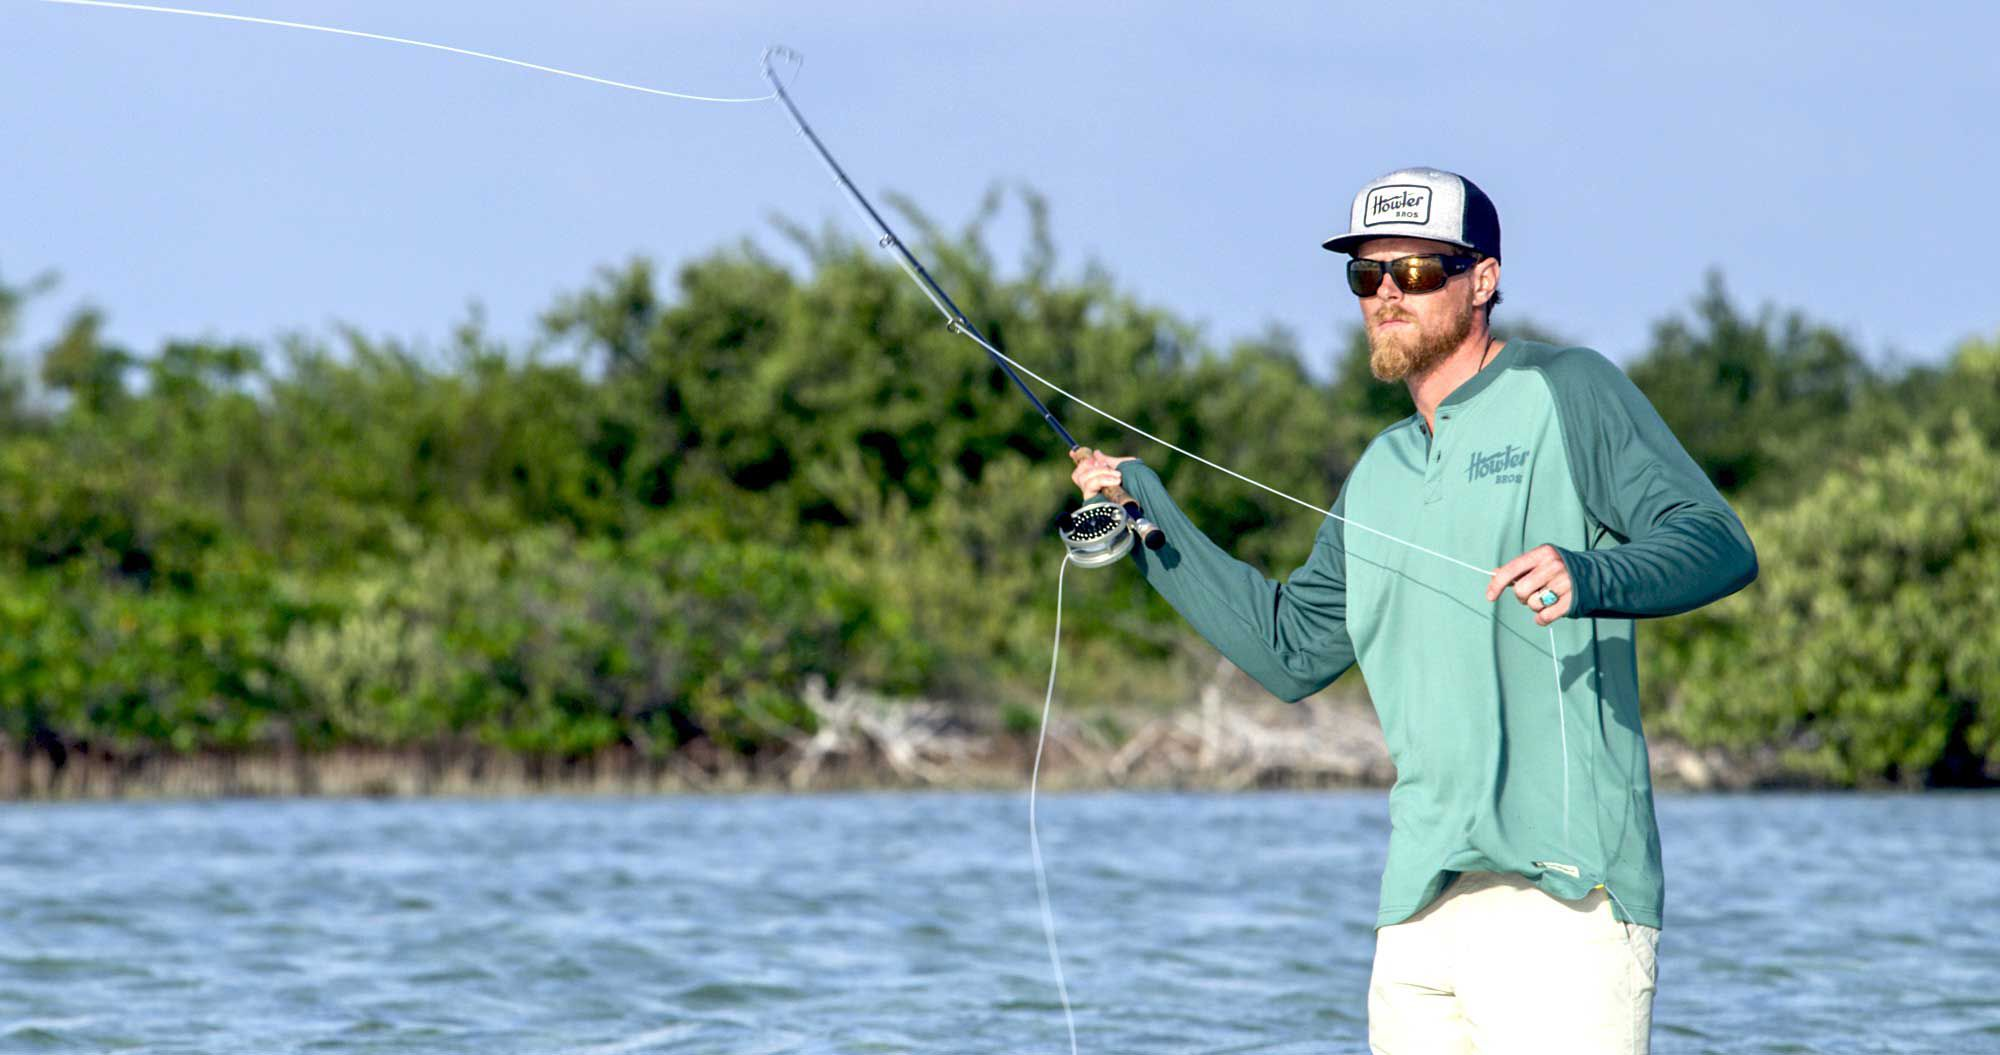 Smith howler brothers collab smith united states for Smith optics fishing